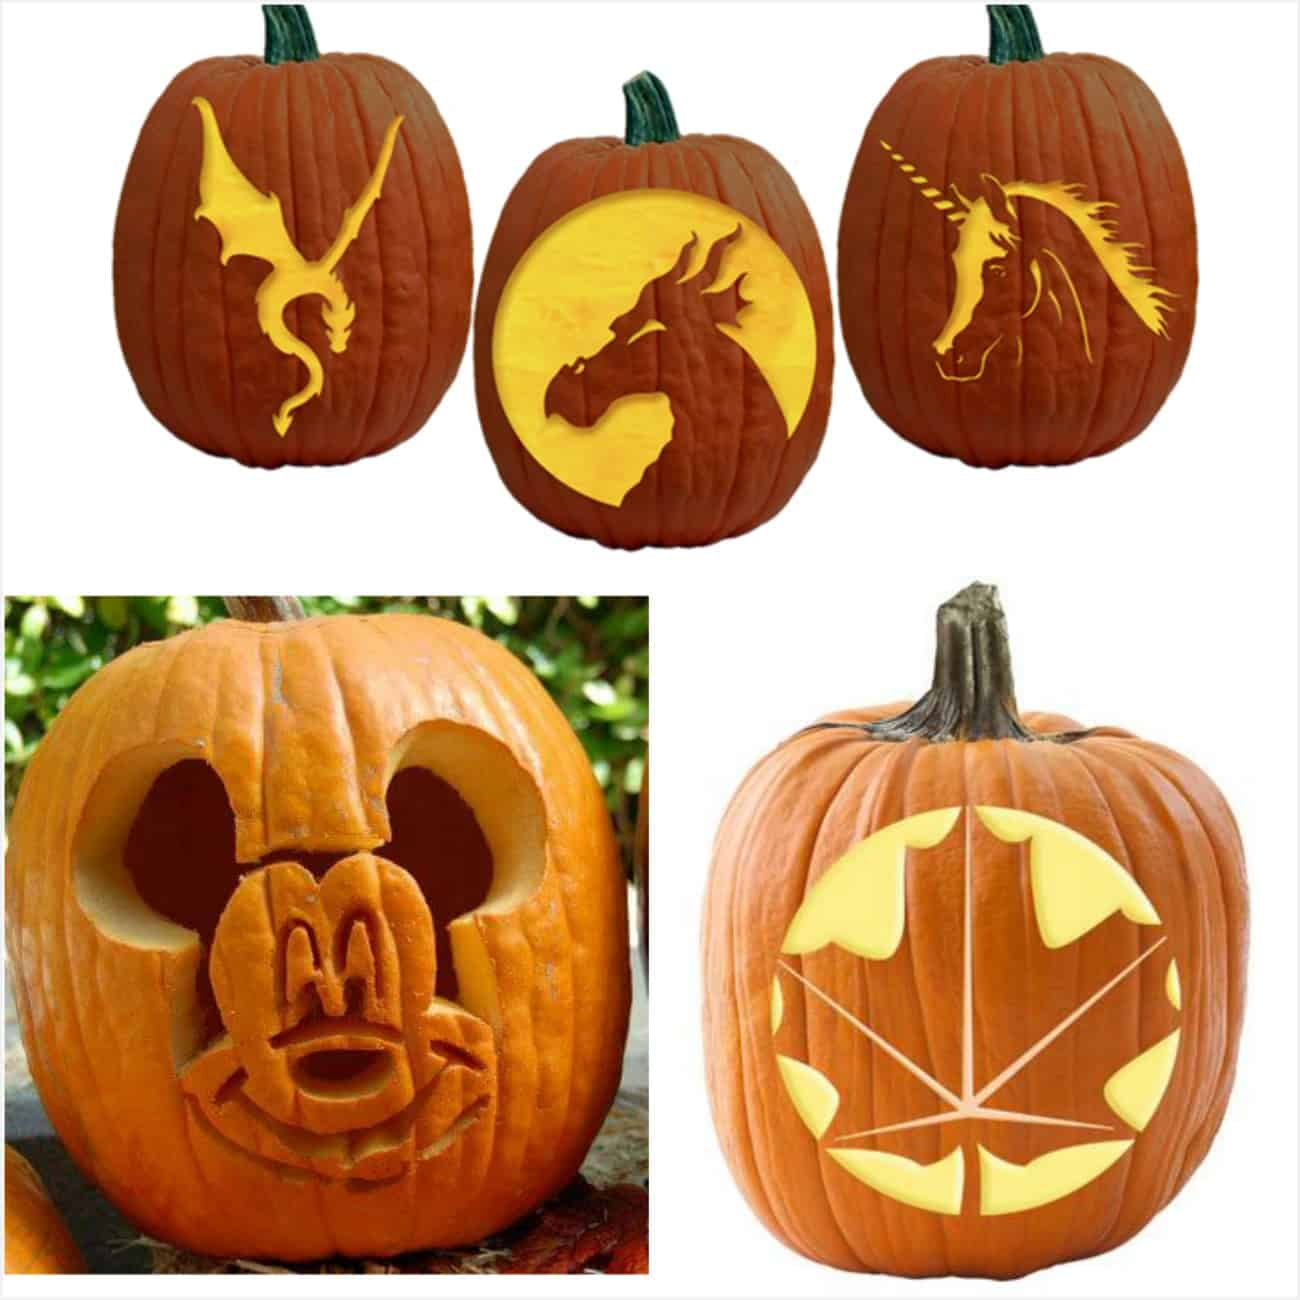 700 Free Pumpkin Carving Patterns And Printable Pumpkin Templates